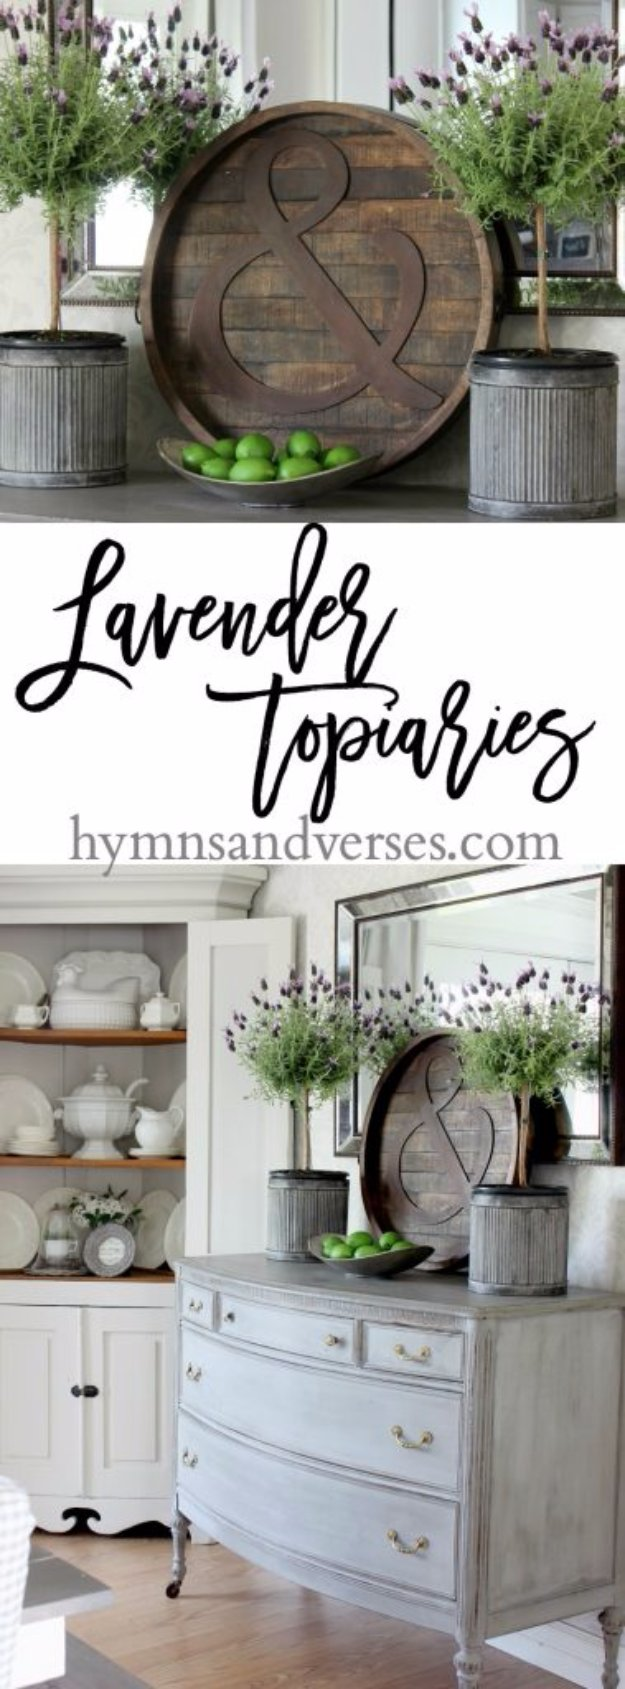 DIY Dining Room Decor Ideas - Lavender Topiaries in the Dining Room - Cool DIY Projects for Table, Chairs, Decorations, Wall Art, Bench Plans, Storage, Buffet, Hutch and Lighting Tutorials